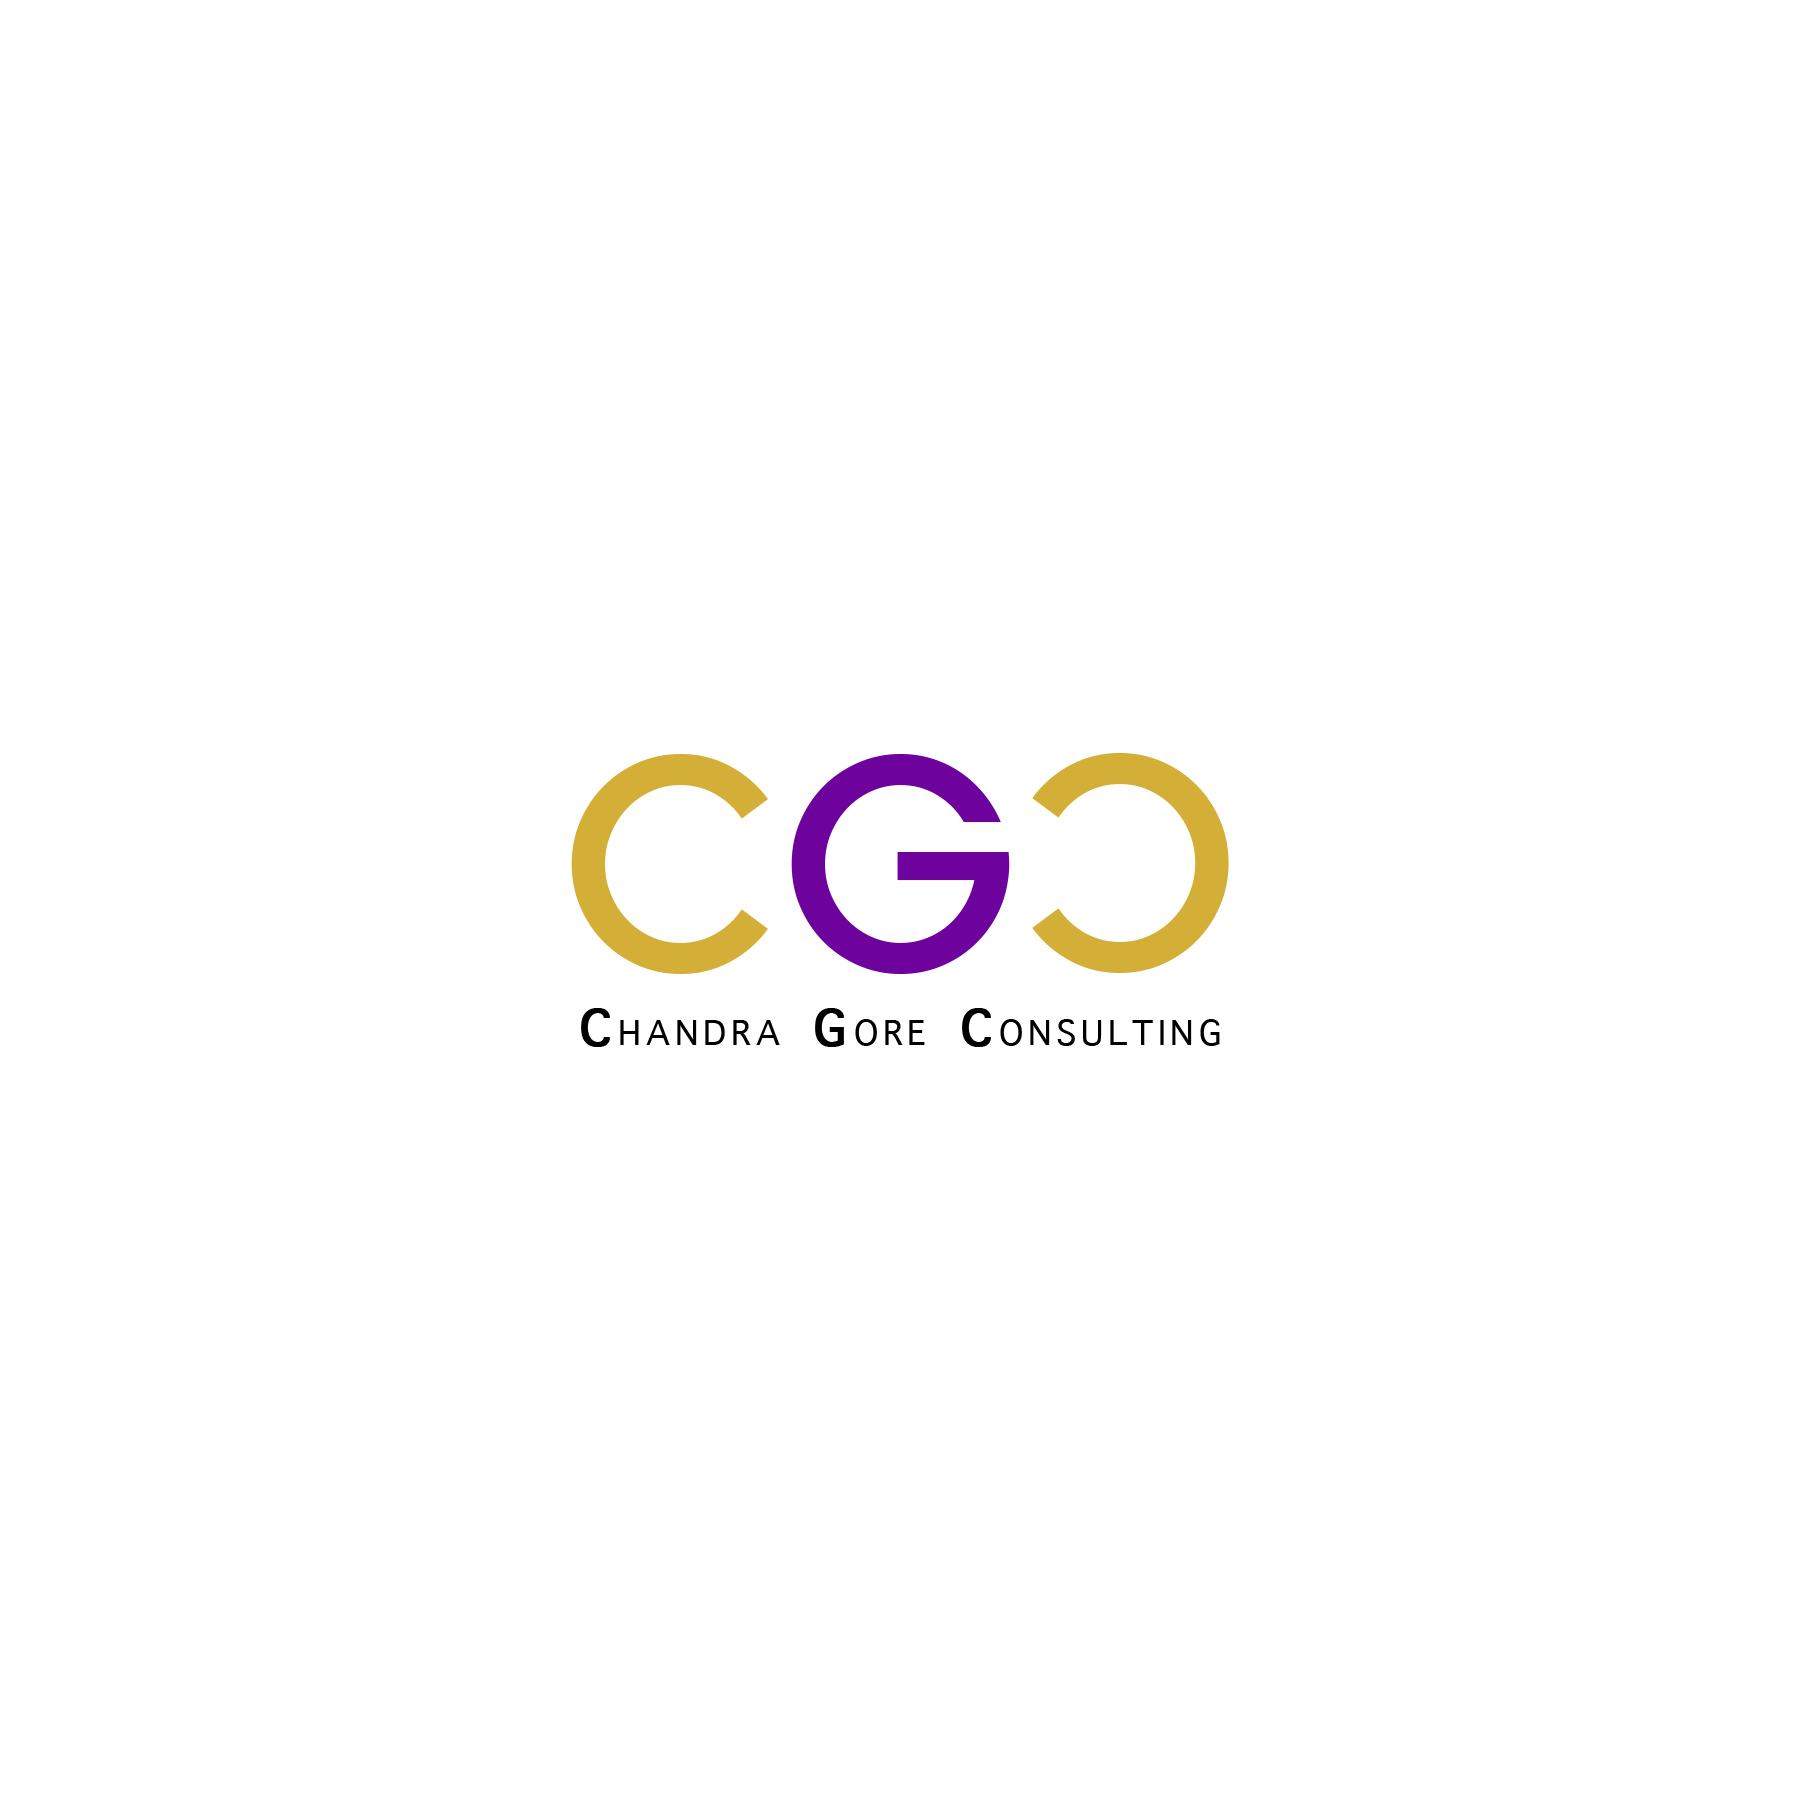 Chandra Gore Consulting Logo